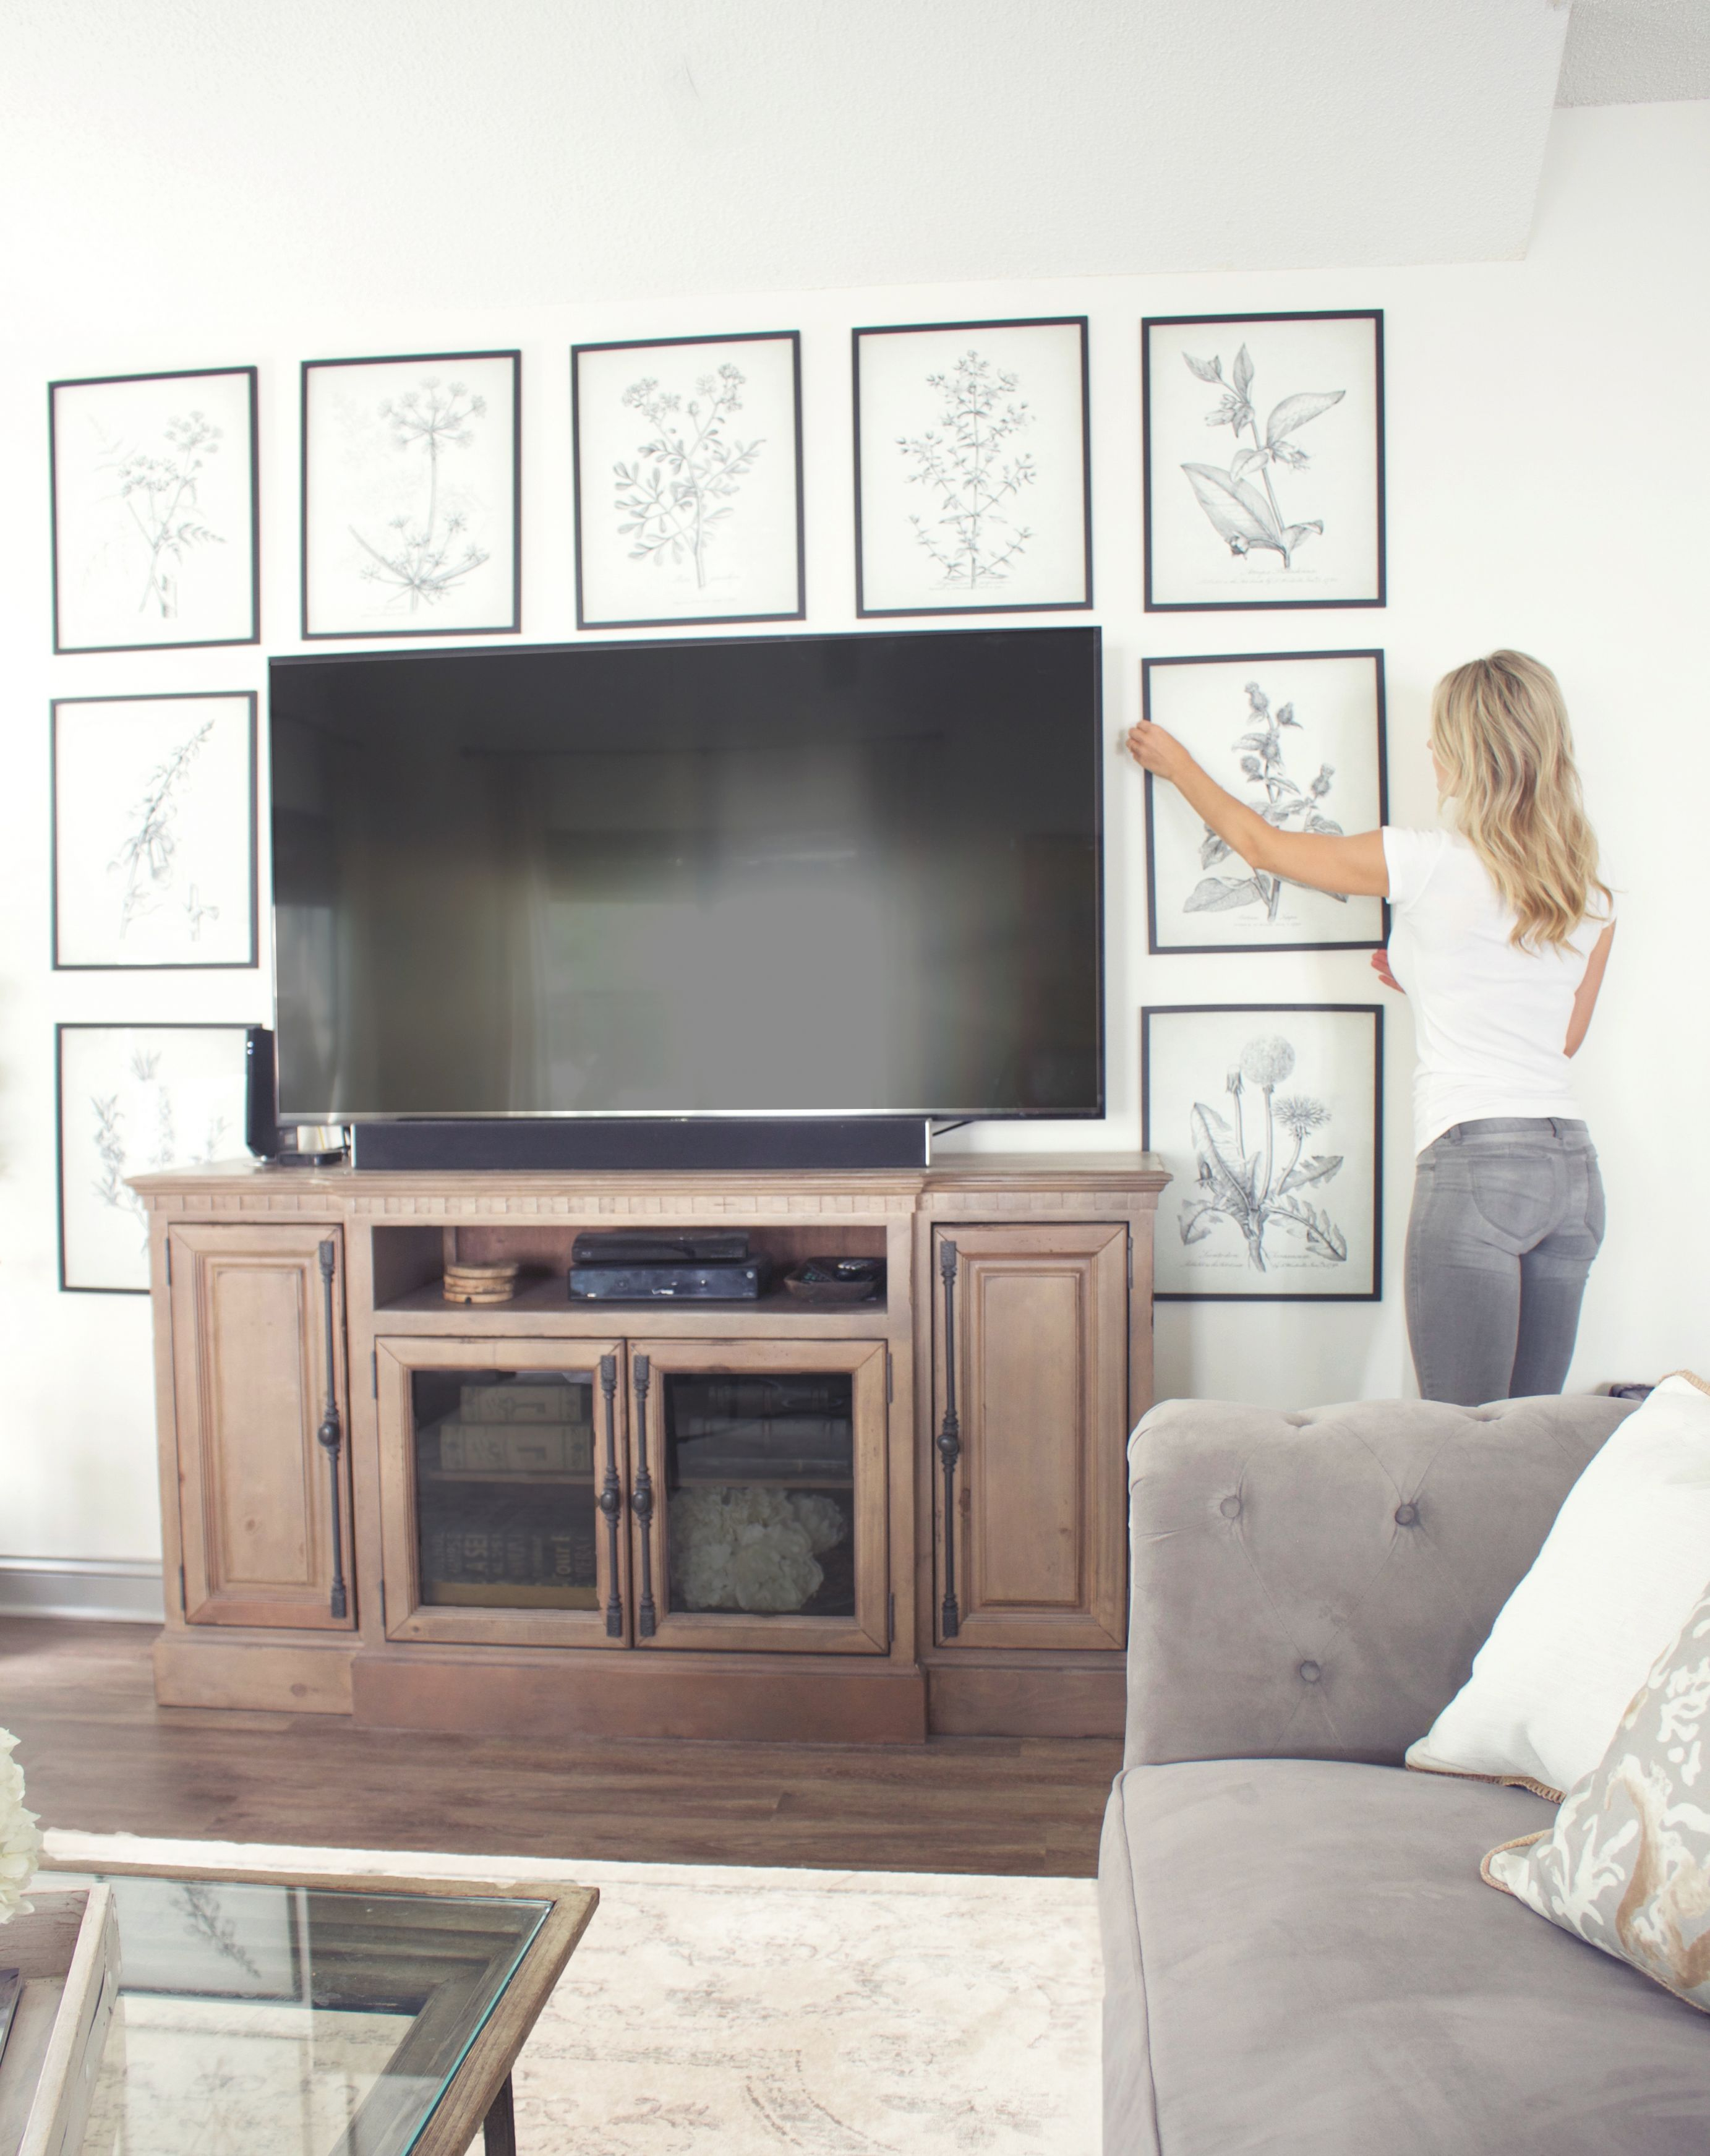 8 Creative Ways To Decorate Around Your Tv - Tuft & Trim throughout Lovely Modern Living Room Tv Wall